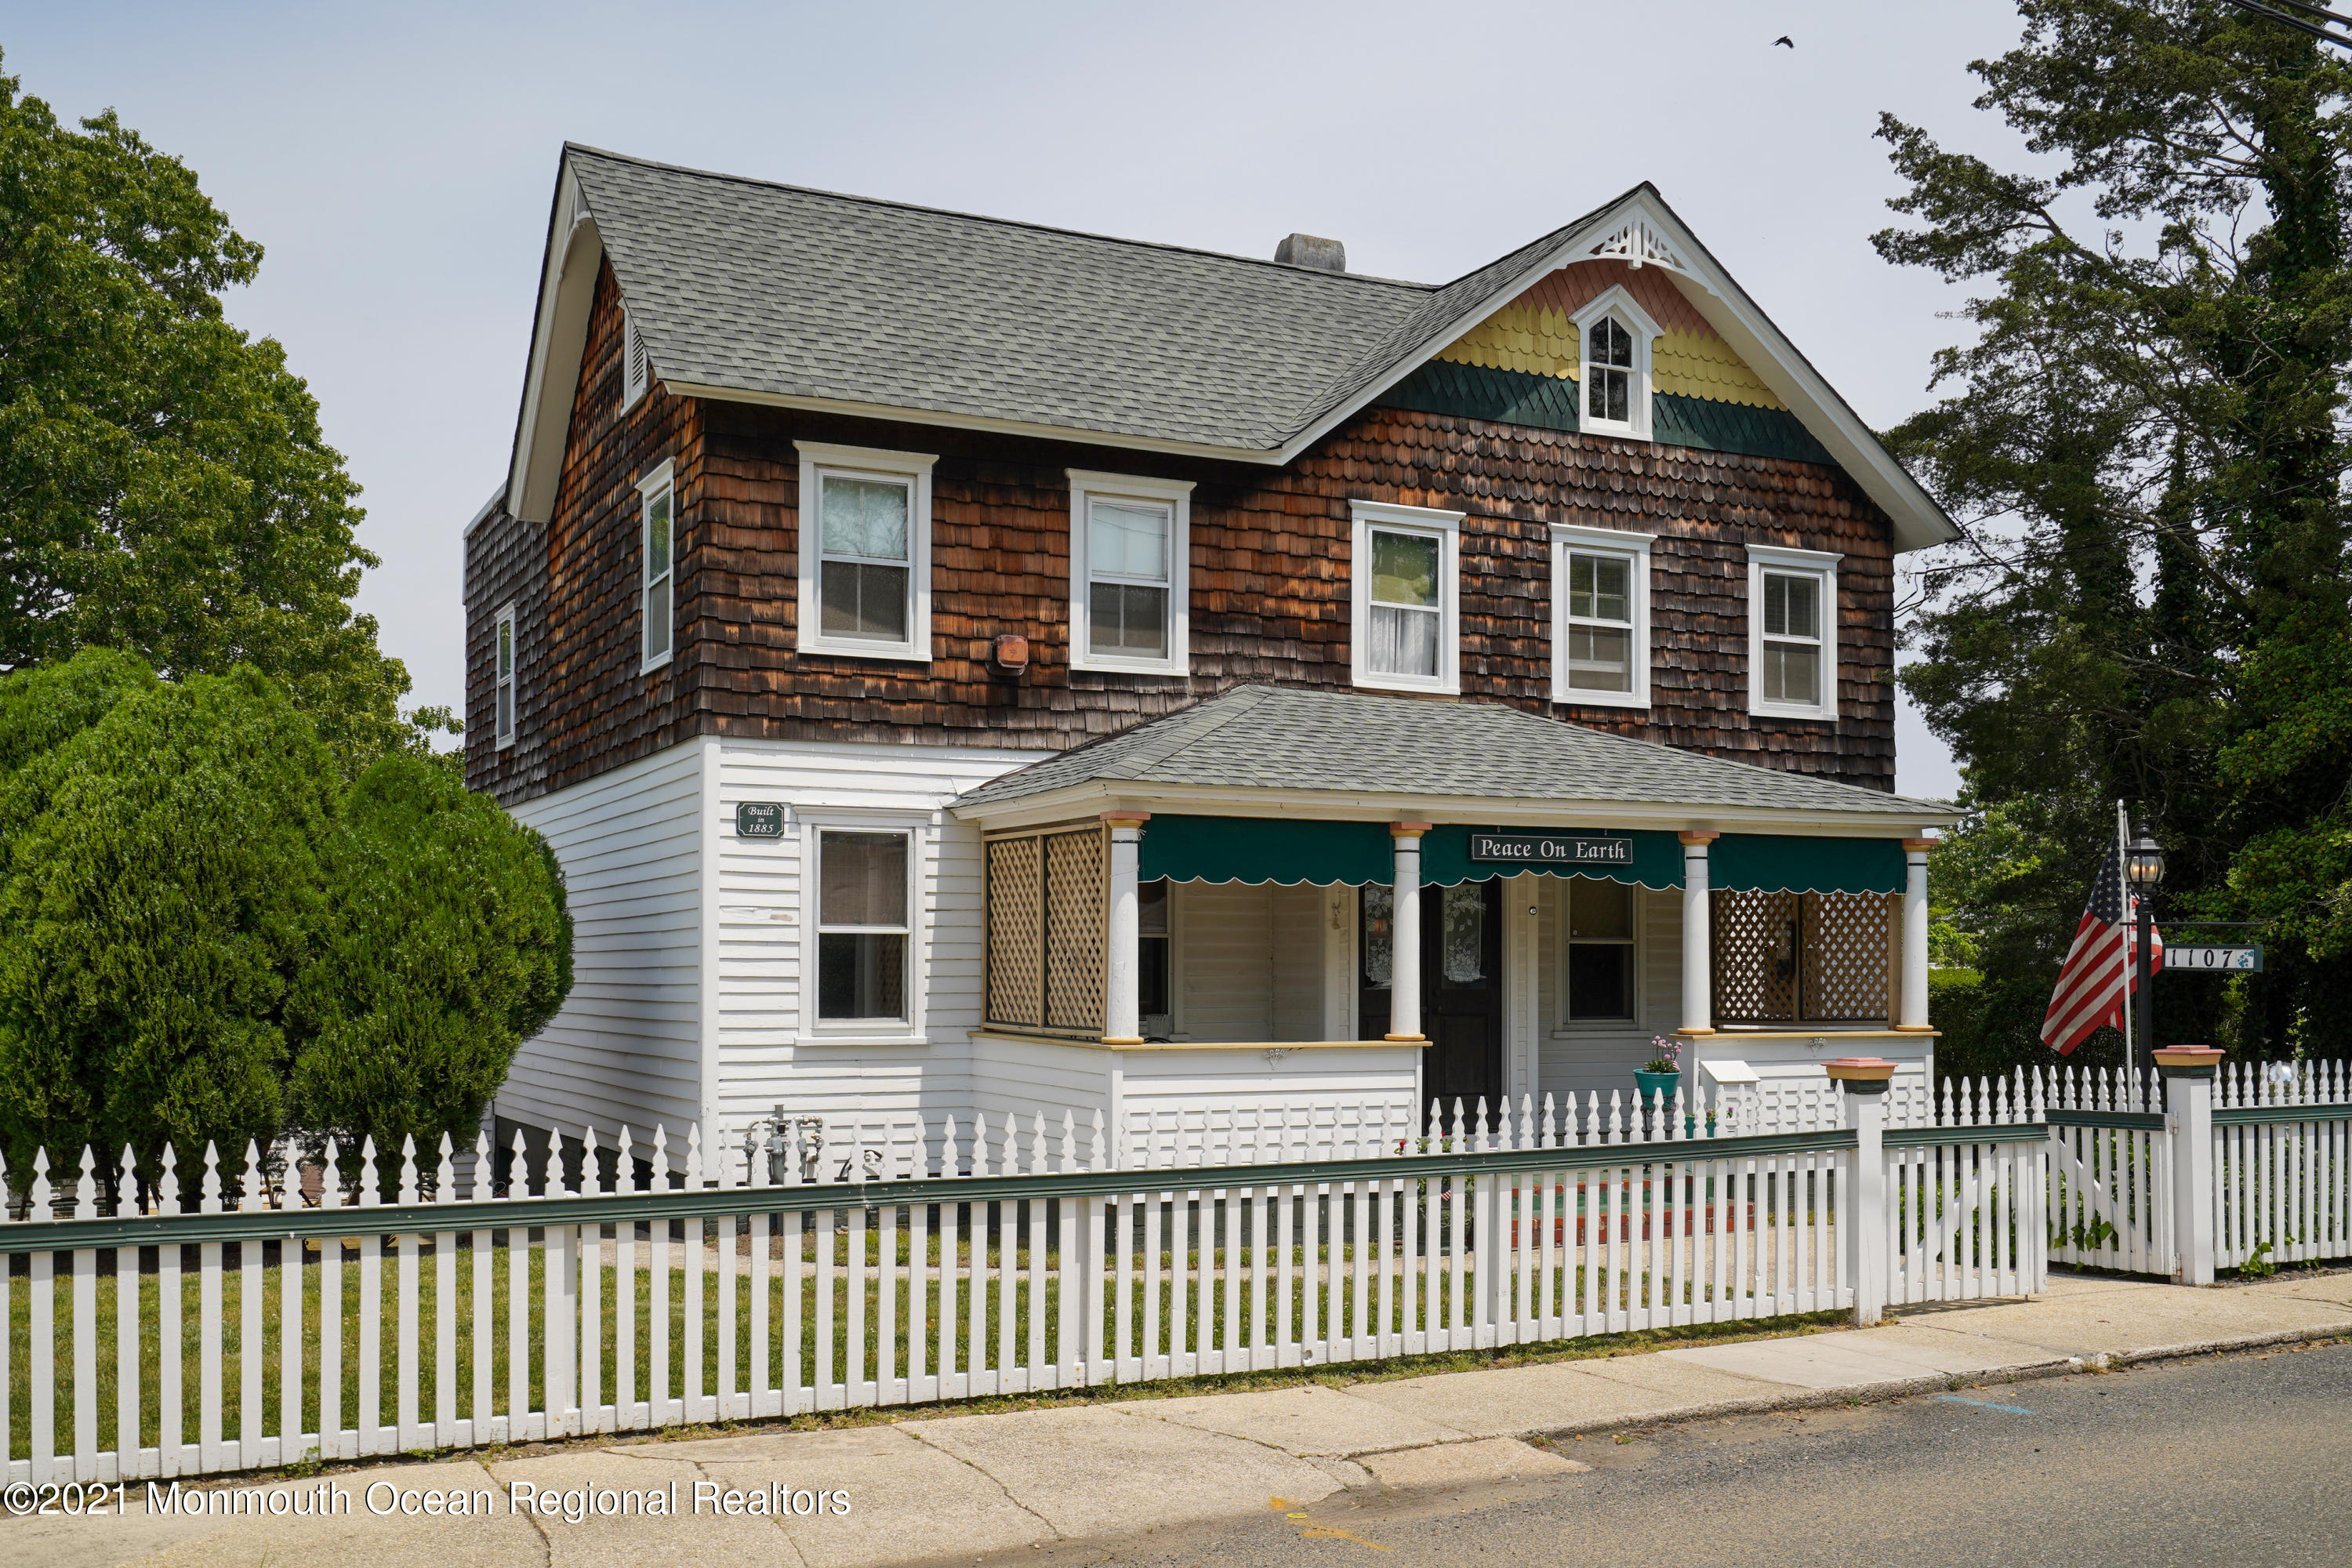 1107 Front Street, Point Pleasant, New Jersey 08742, 4 Bedrooms Bedrooms, ,2 BathroomsBathrooms,Single Family,For Sale,1107 Front Street,1,22116354